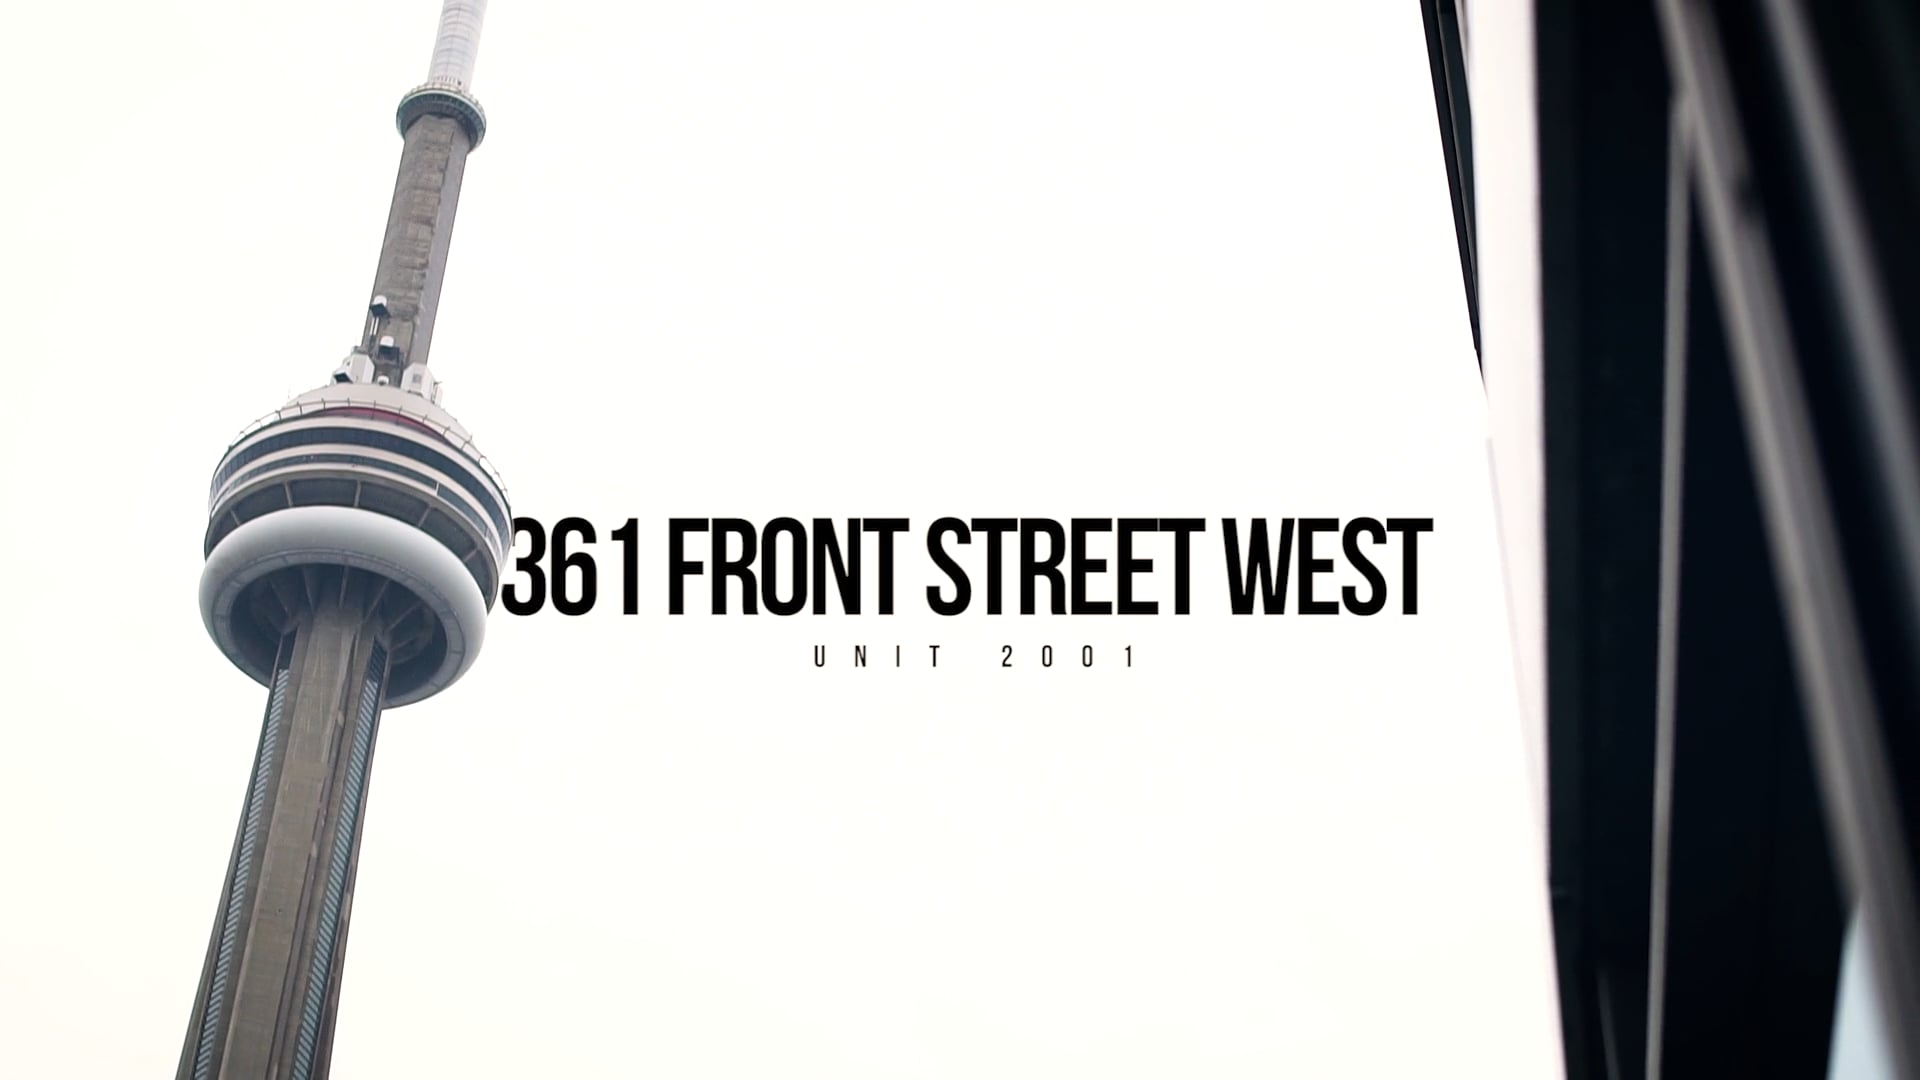 361 Front Street West 2001